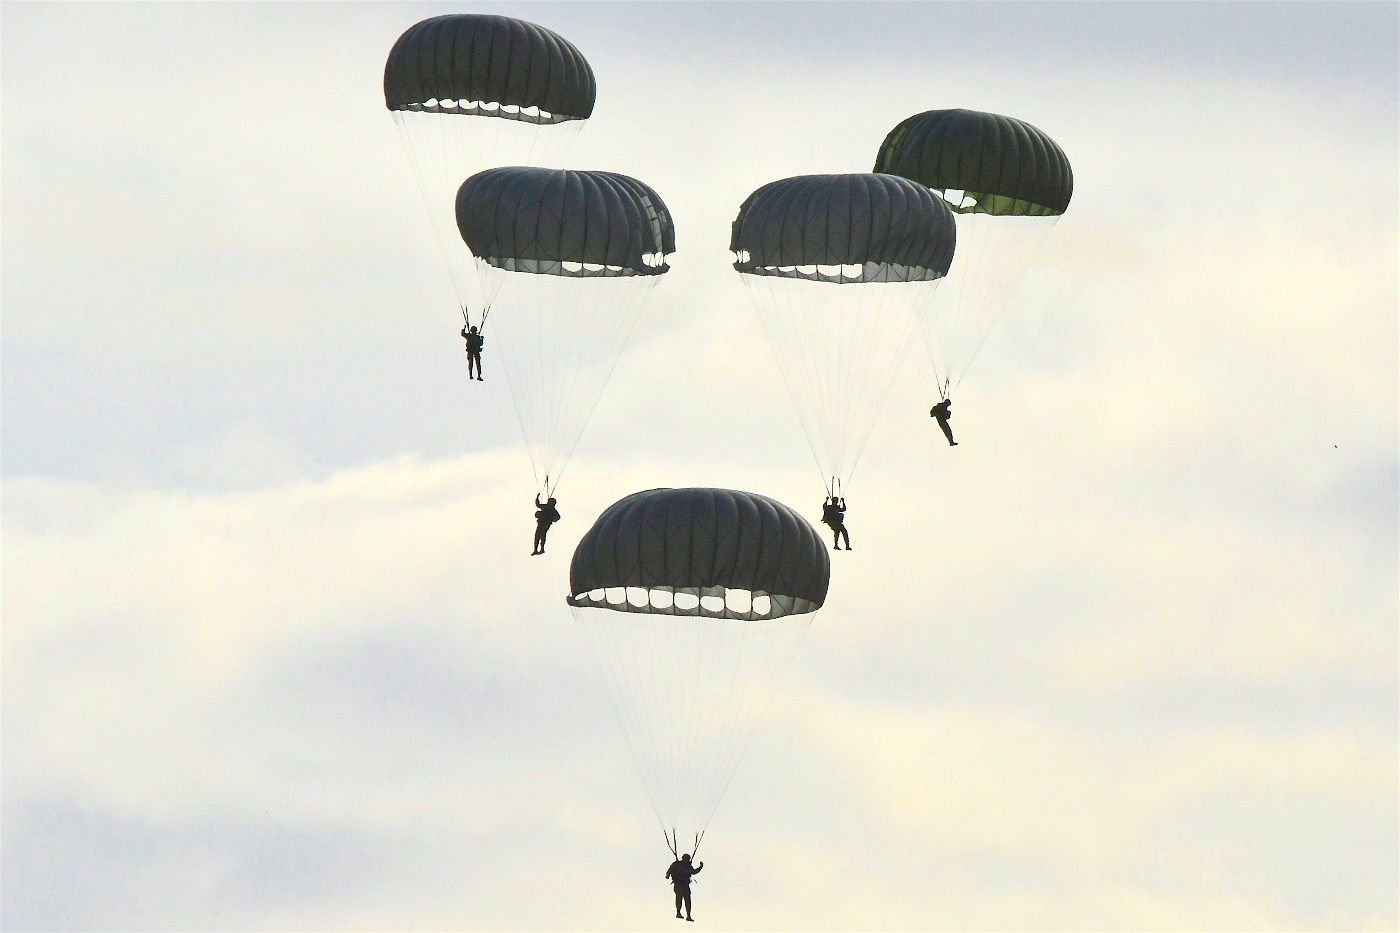 """Argentine Armed Forces Strengthen Aerial Capacity in Joint Exercise """"Larus 16"""""""